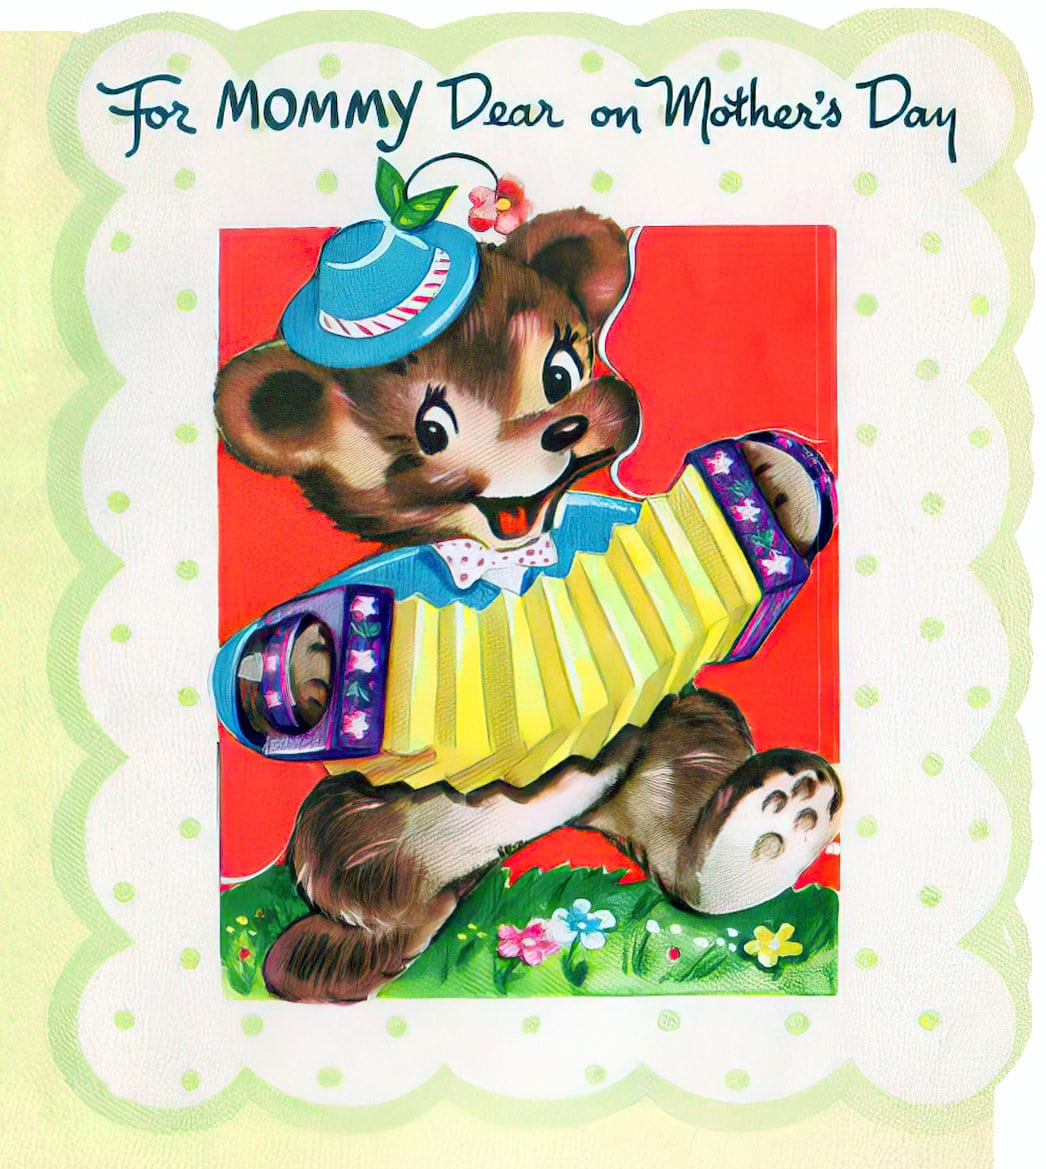 Cute bear - For mommy dear on Mother's Day (1951)